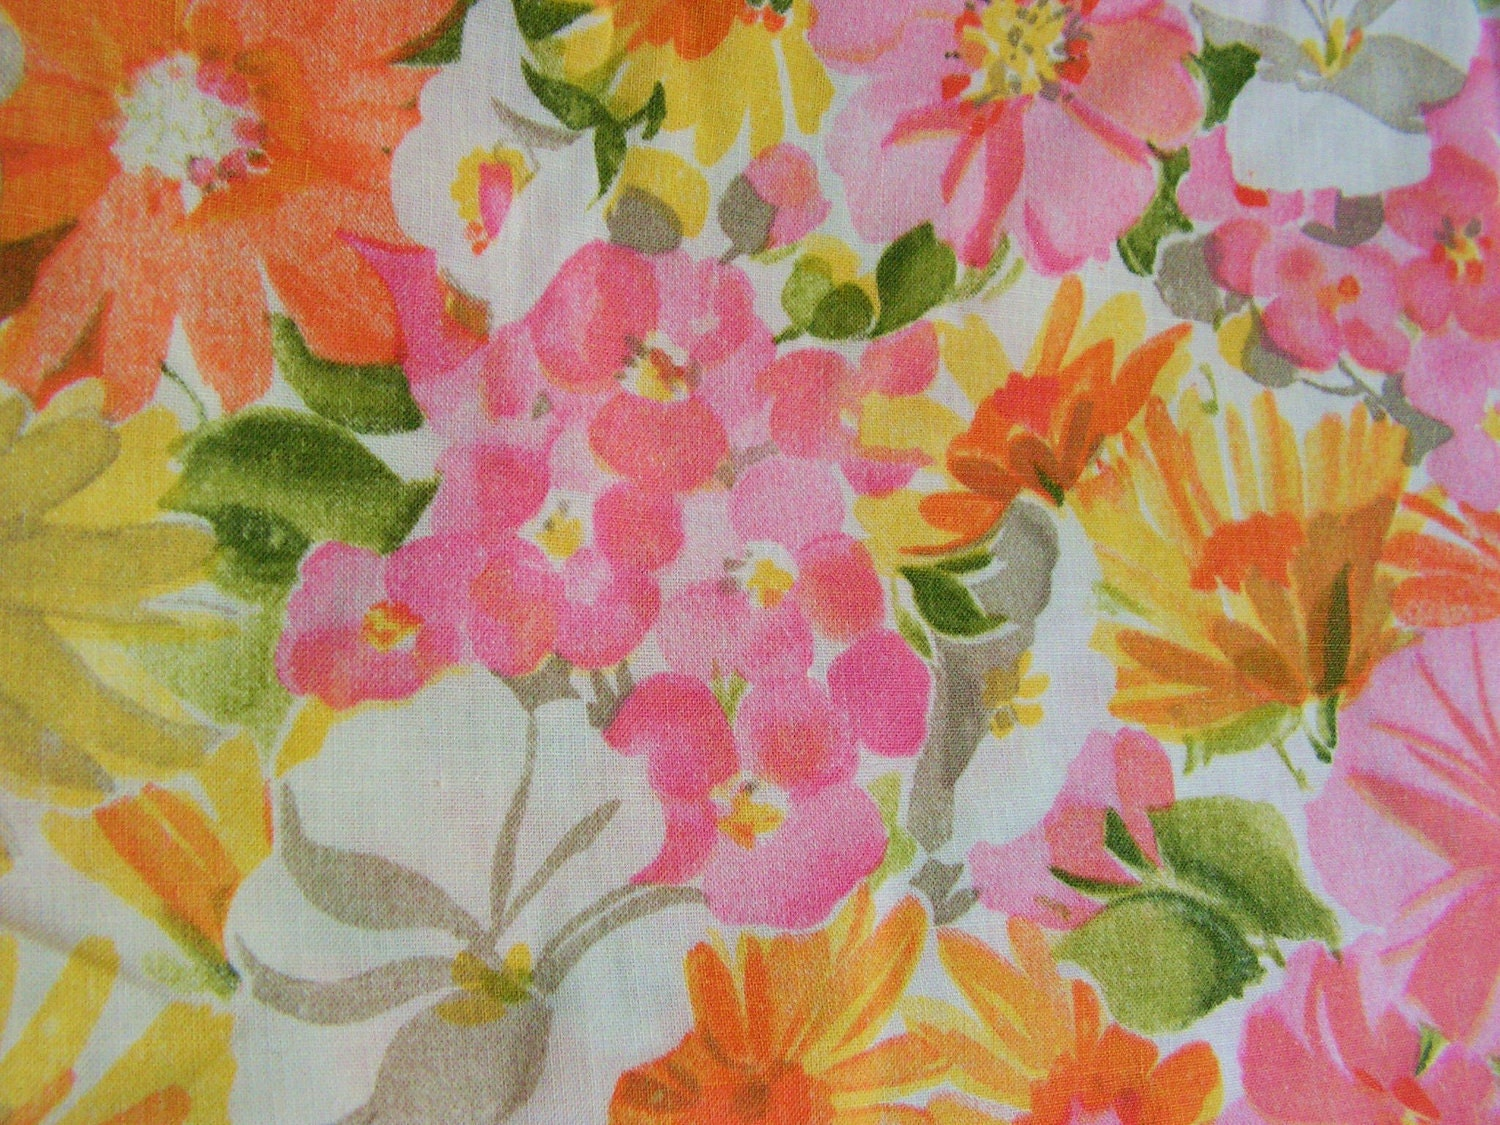 Rose Floral fabric 3 yards plus 19 inches vintage look |Vintage Floral Fabric